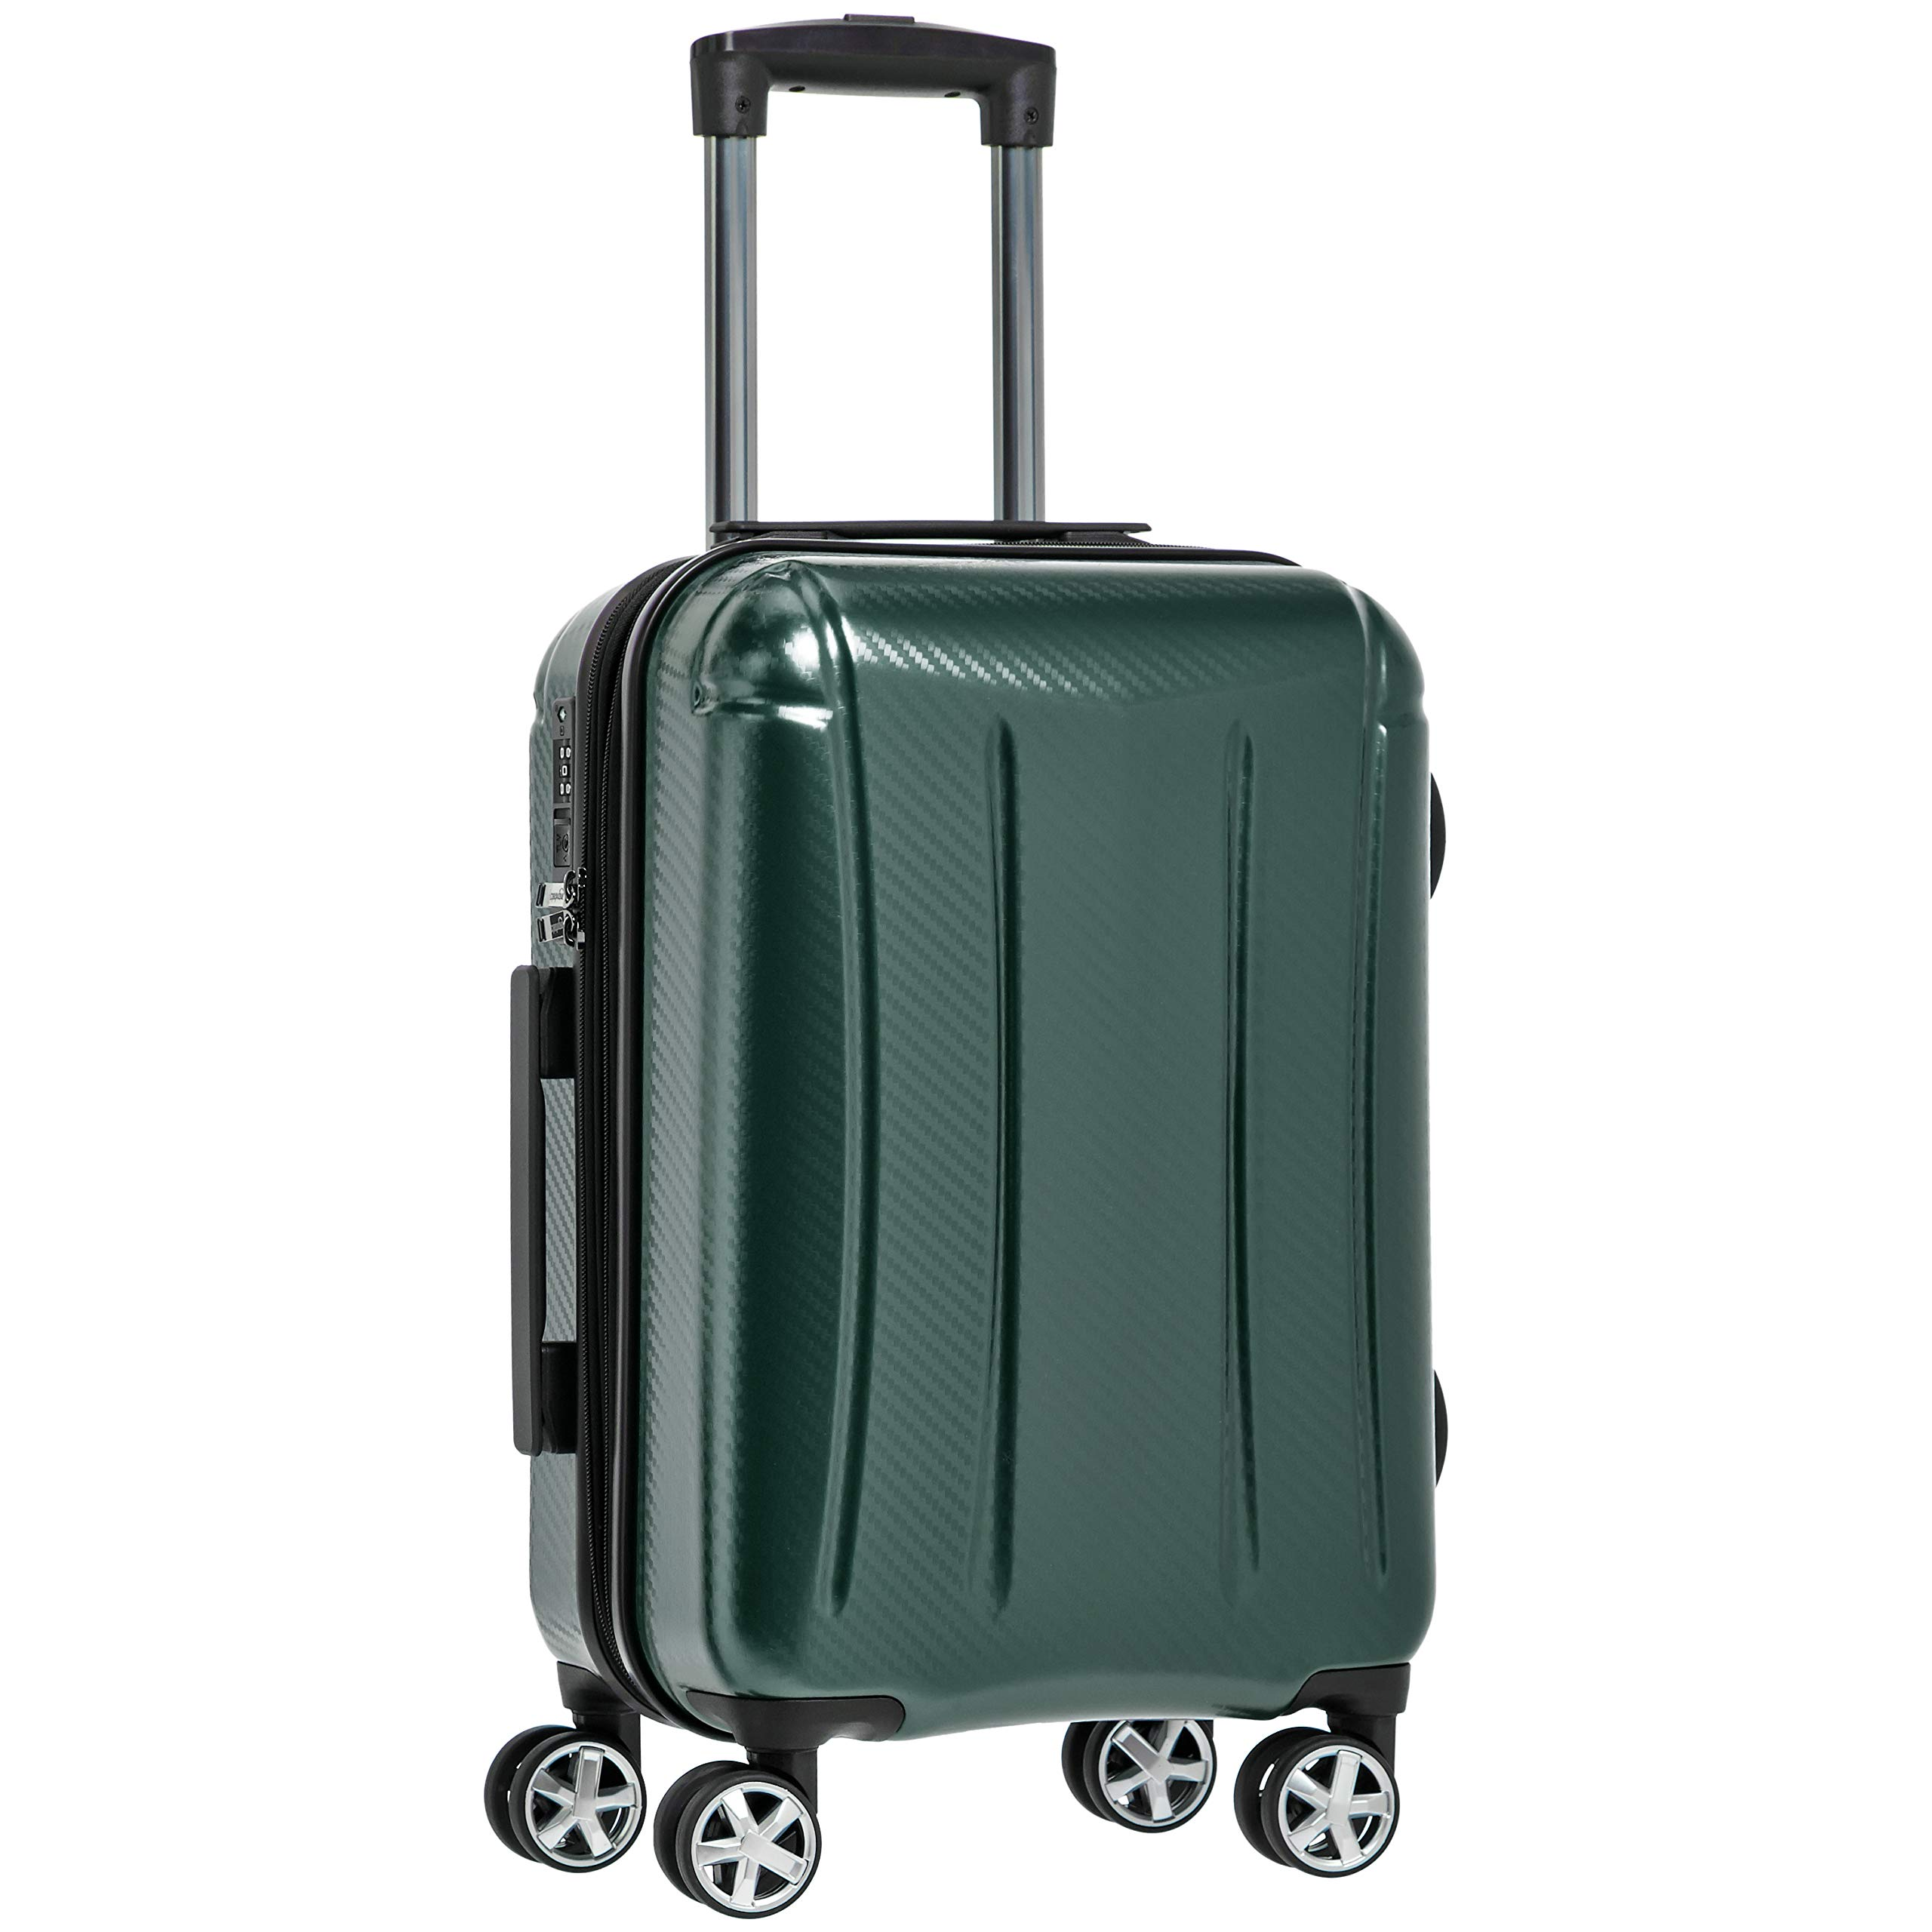 AmazonBasics Oxford Luggage Expandable Suitcase with TSA Lock Spinner, 20-Inch Carry-On, Green